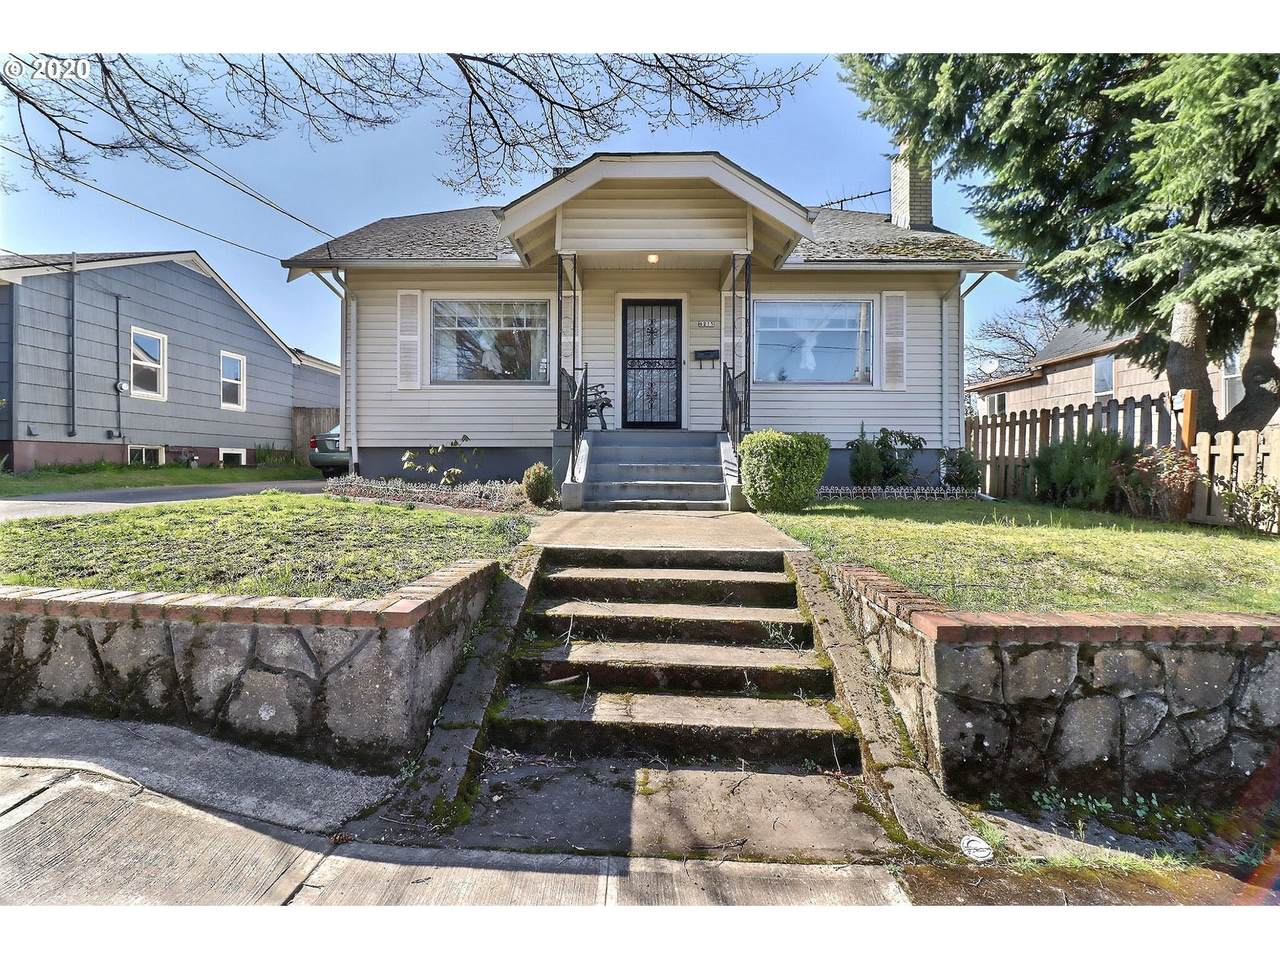 6215 15TH Ave - Photo 1